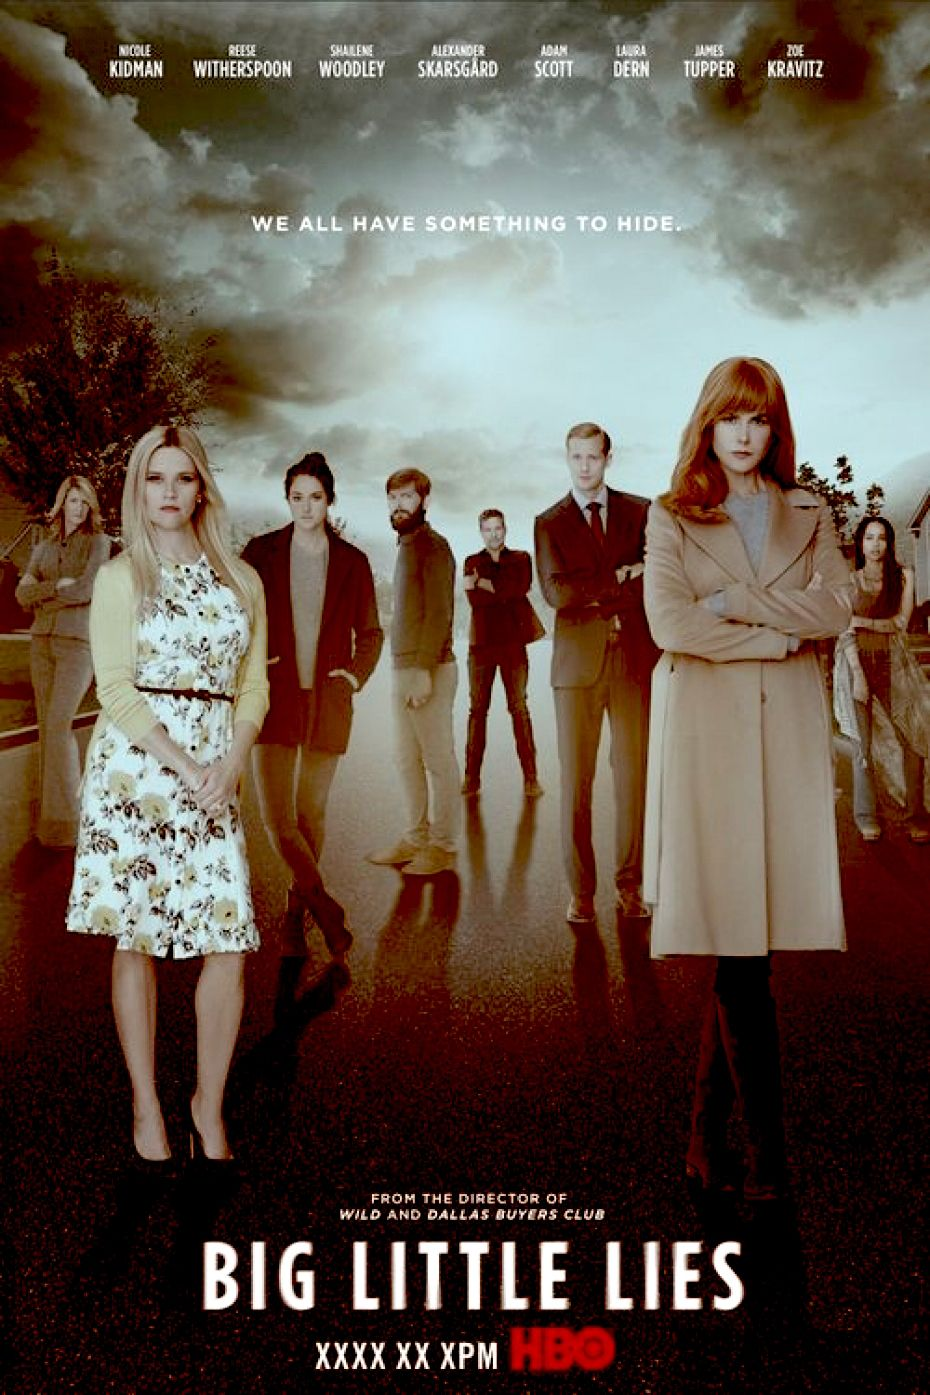 Big Little Lies Promo With Images Big Little Lies Tv Series